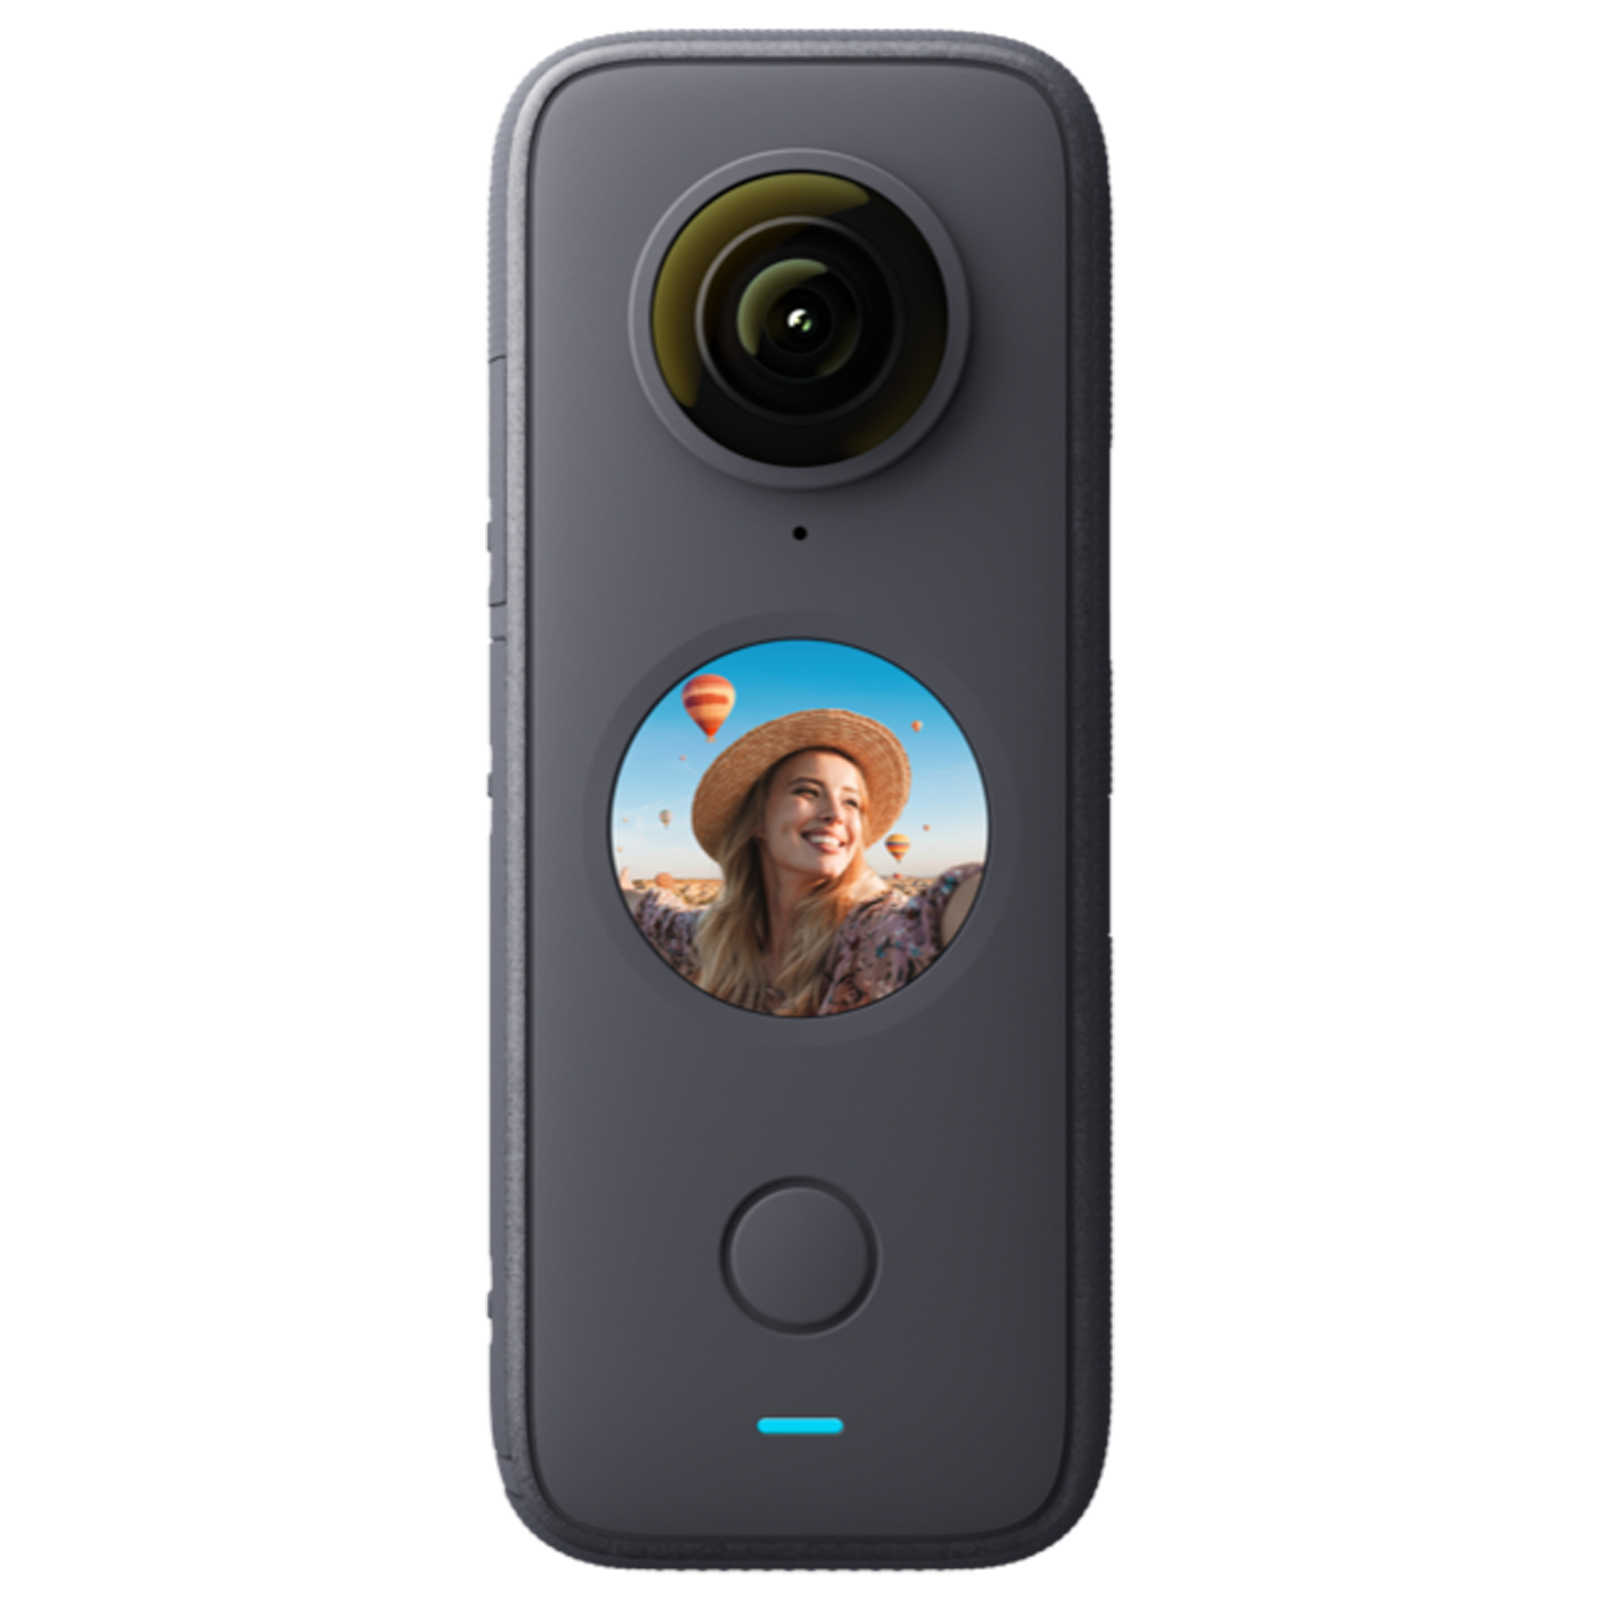 Insta360 One X2 18MP Action Camera (1x Optical Zoom, 6-Axis Gyroscope Sensor, IN.00000009.01, Black)_1